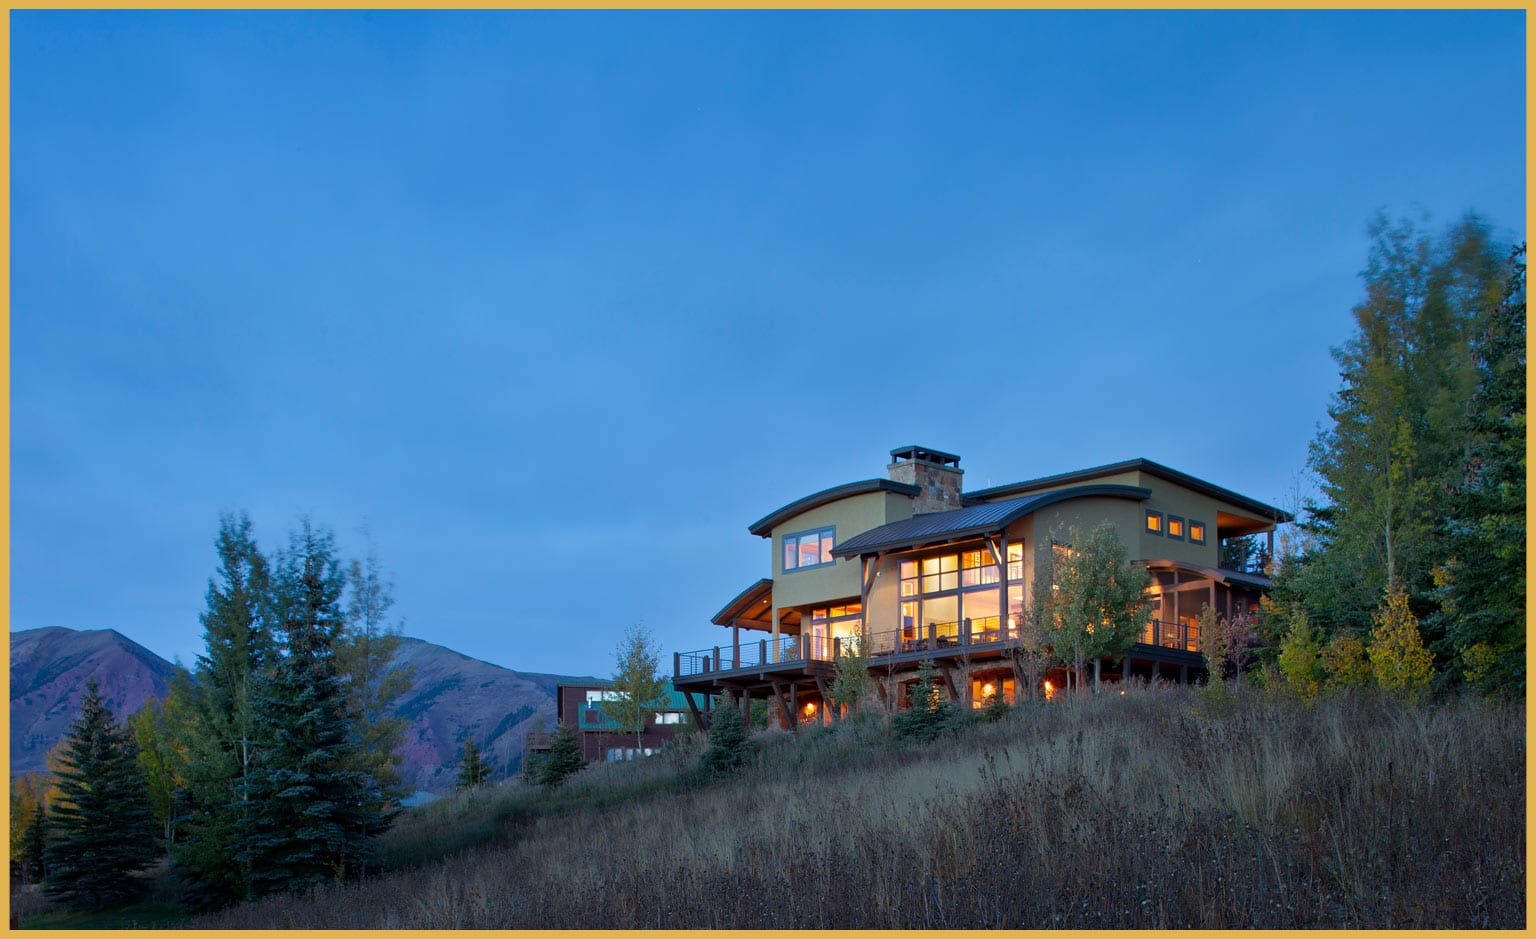 Groves_Home_Crested_butte